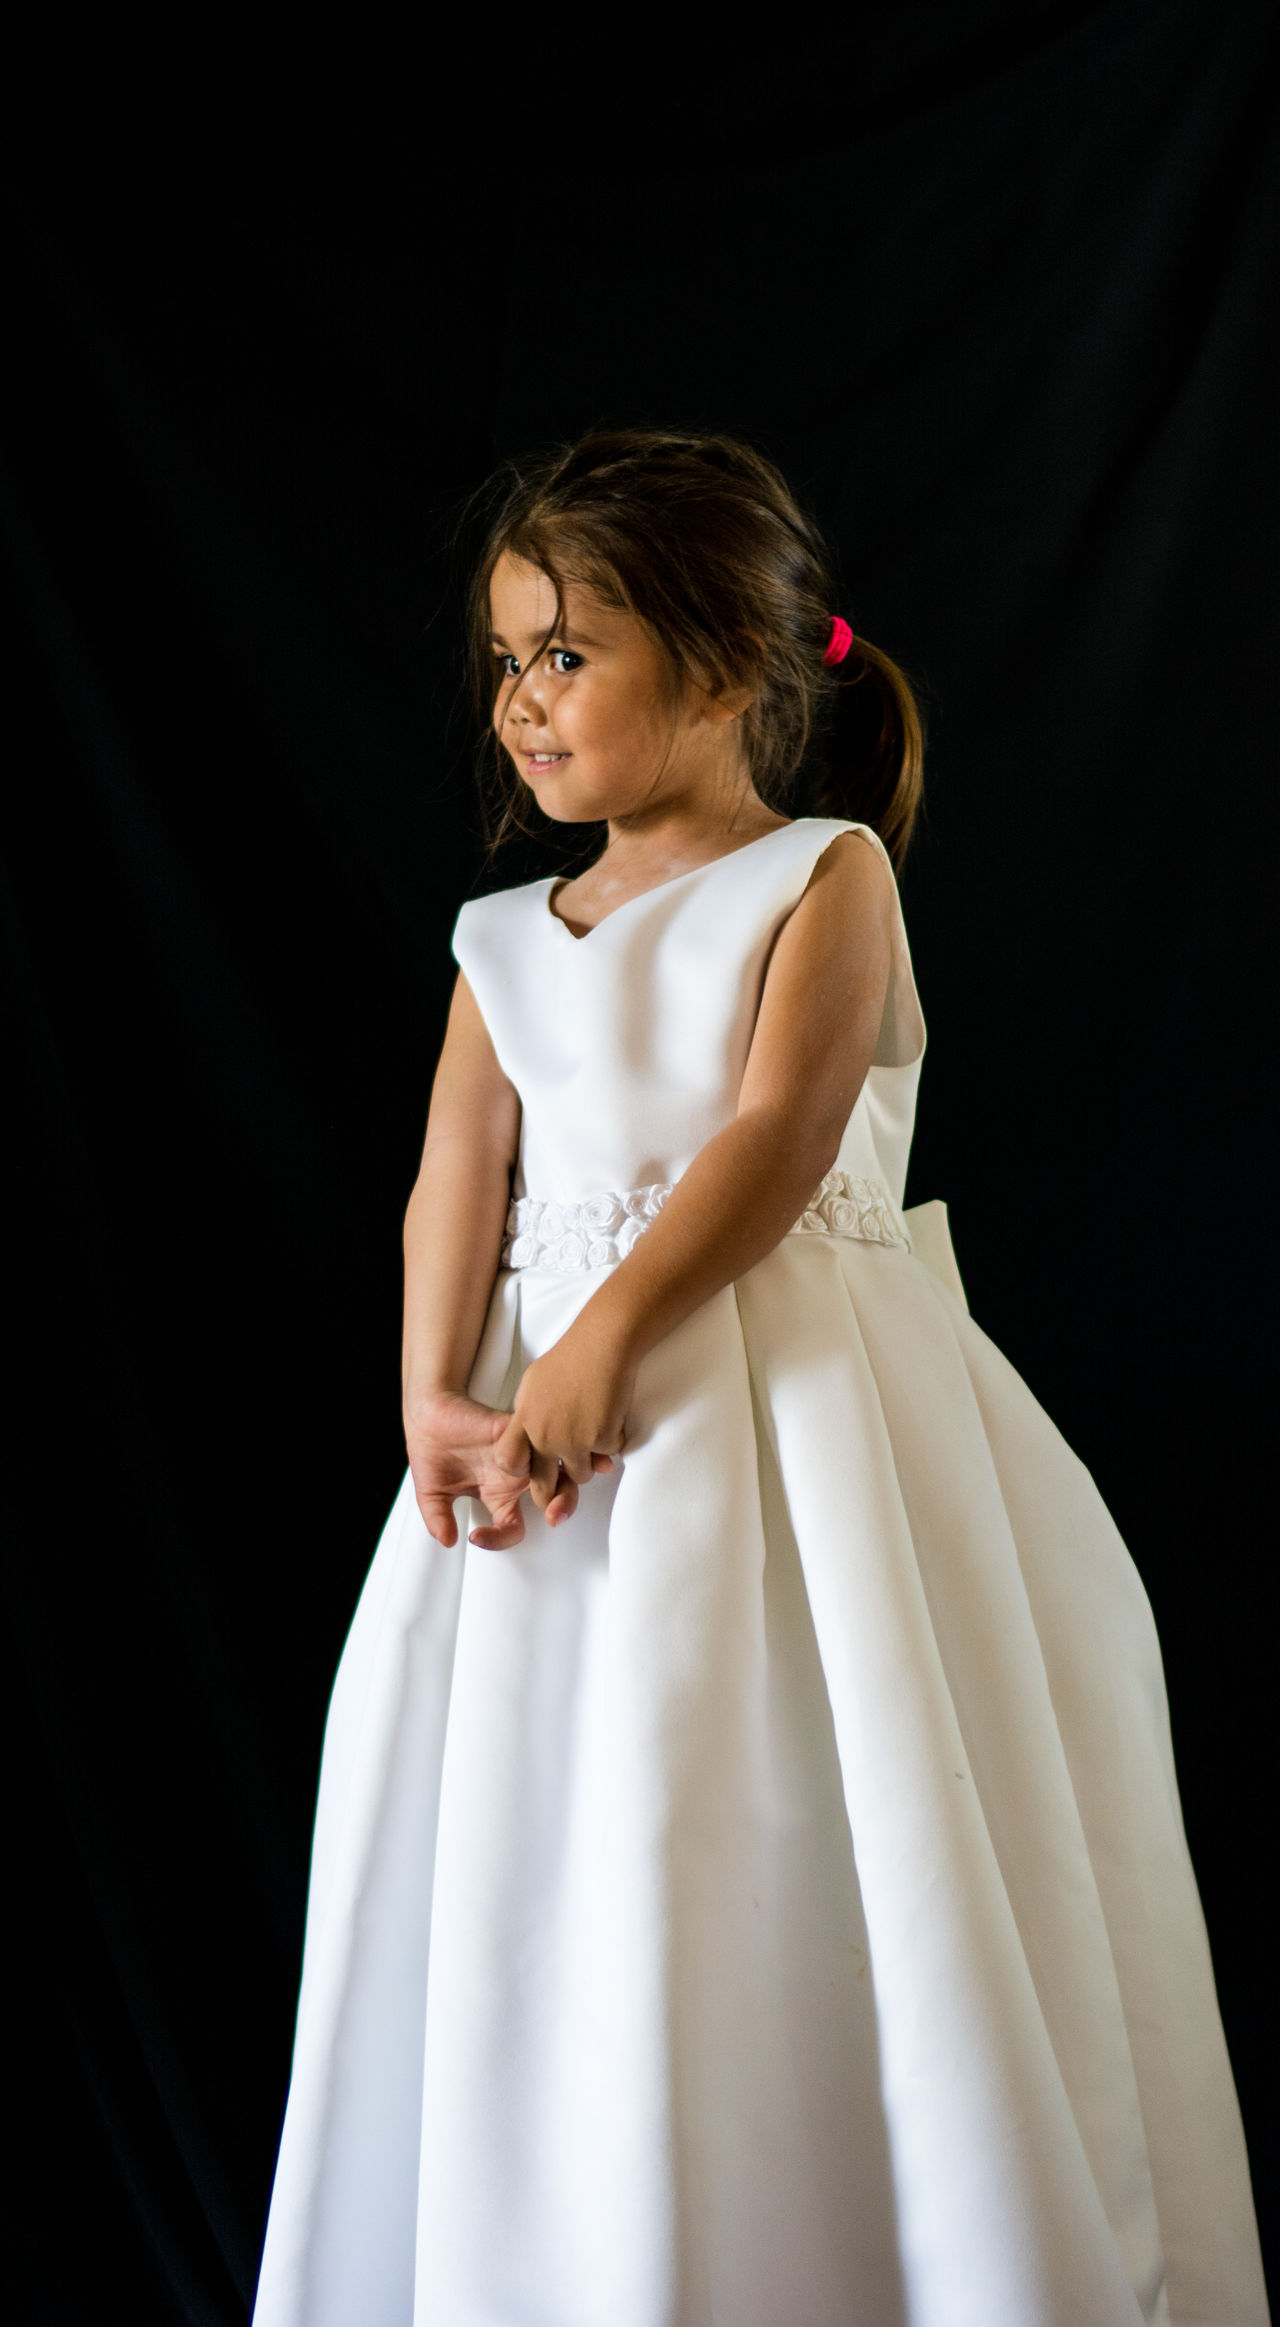 Beautiful stock photos of black background, 4-5 Years, Black Background, Brown Hair, Childhood